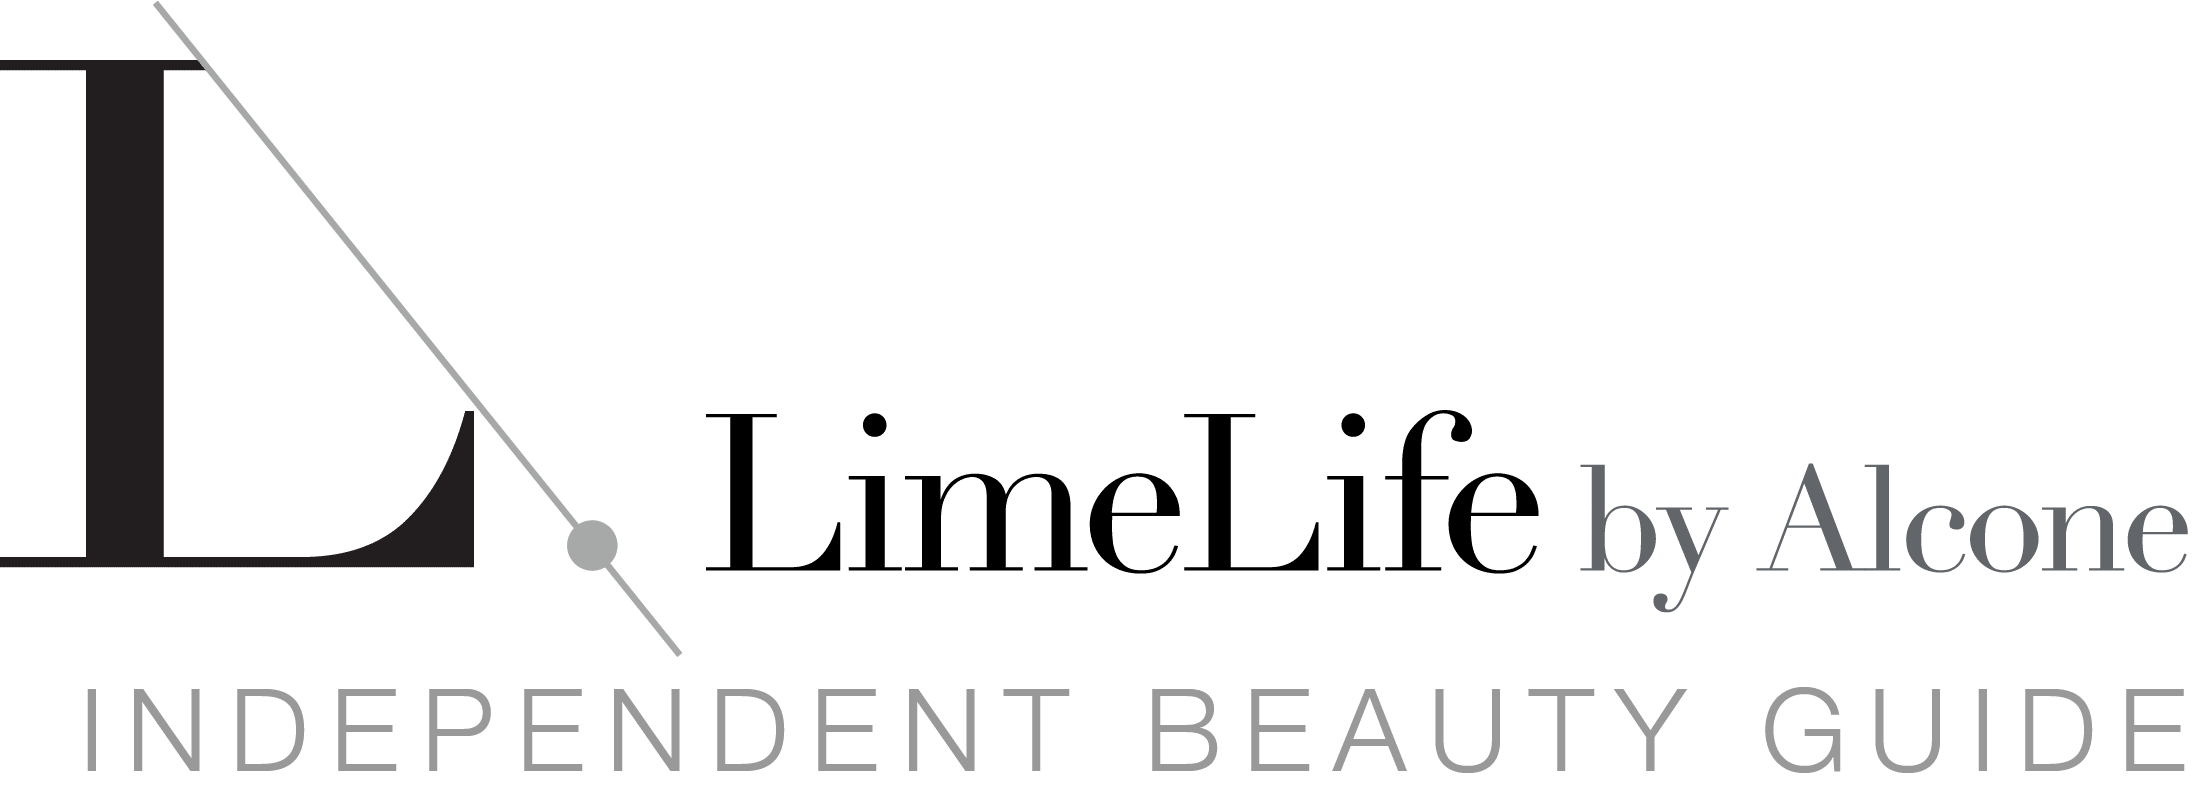 LimeLife by Alcone Independent Beauty Guide, Jean Lucas, Brazen Faith LLC, Anchorage, Alaska